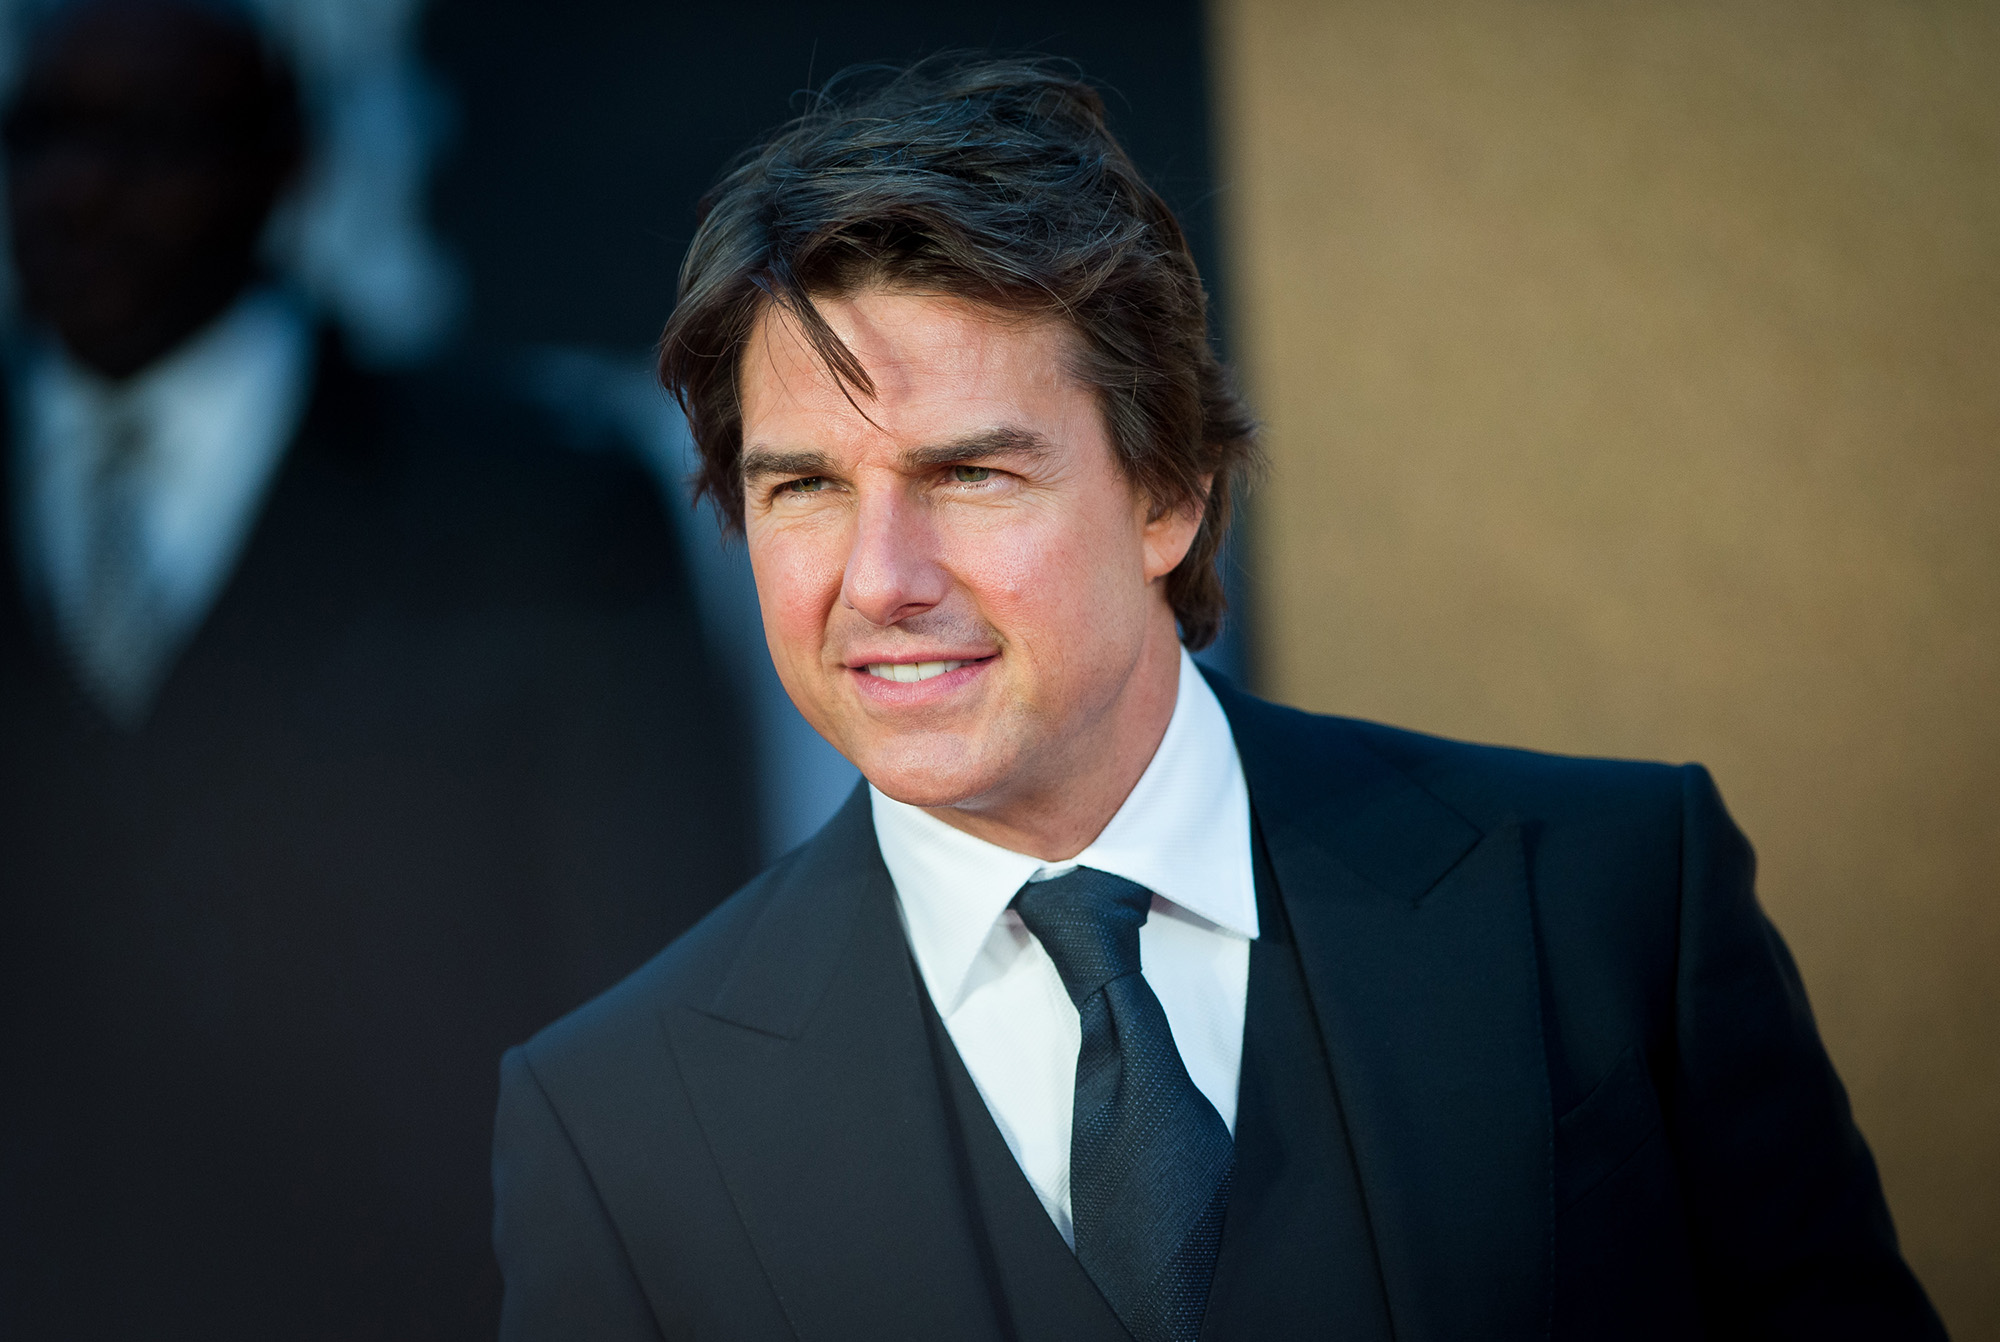 Tom Cruise attends the European premiere of  Jack Reacher: Never Go Back  in London, England. (Photo by Samir Hussein/WireImage)